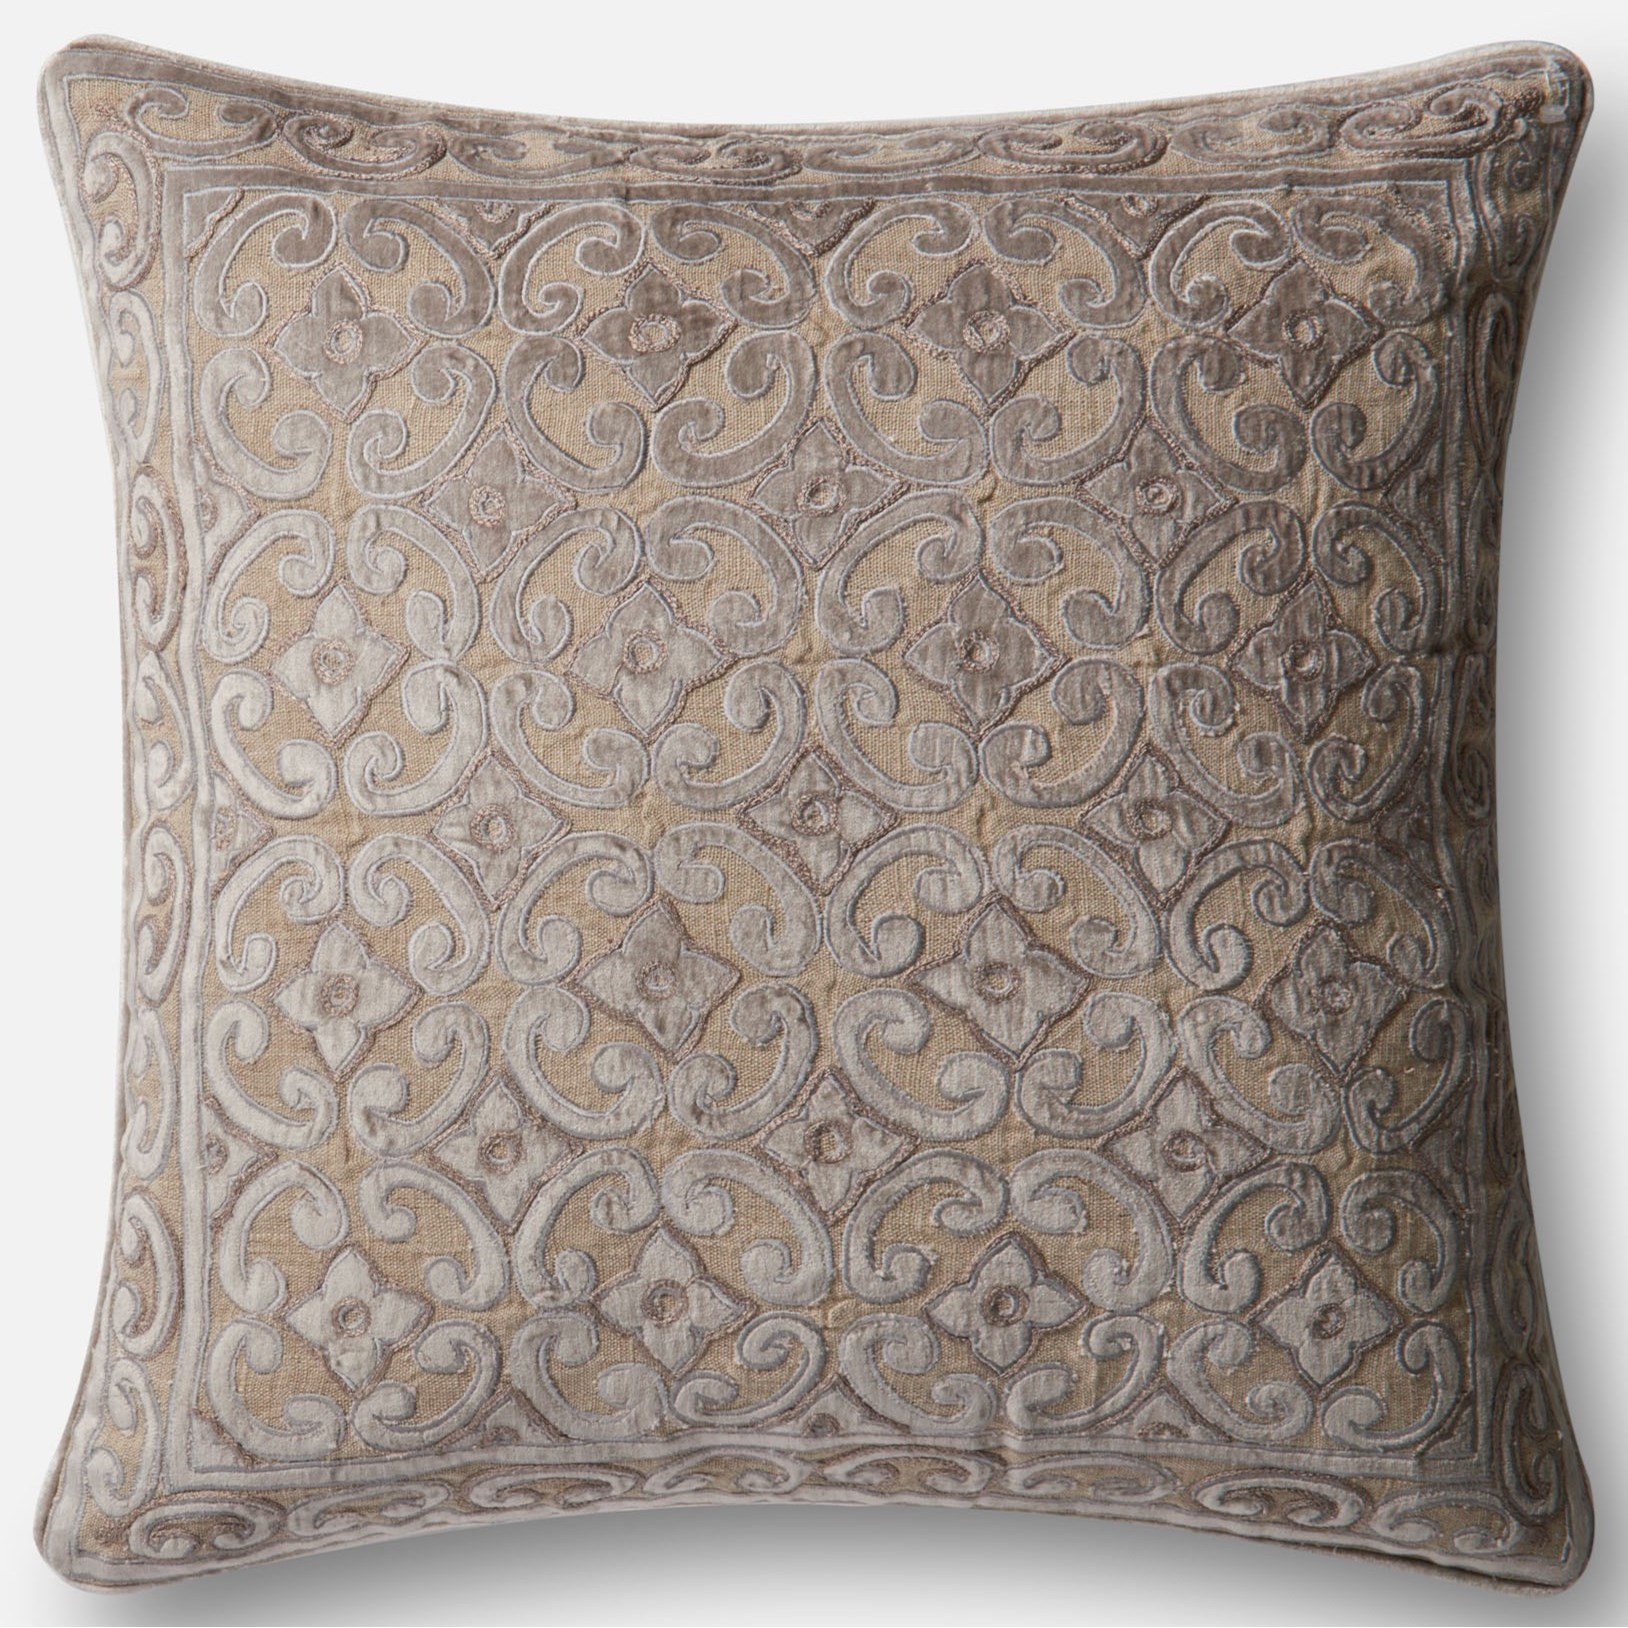 "Applique 22"" X 22"" Down Pillow by Loloi Rugs at Sprintz Furniture"